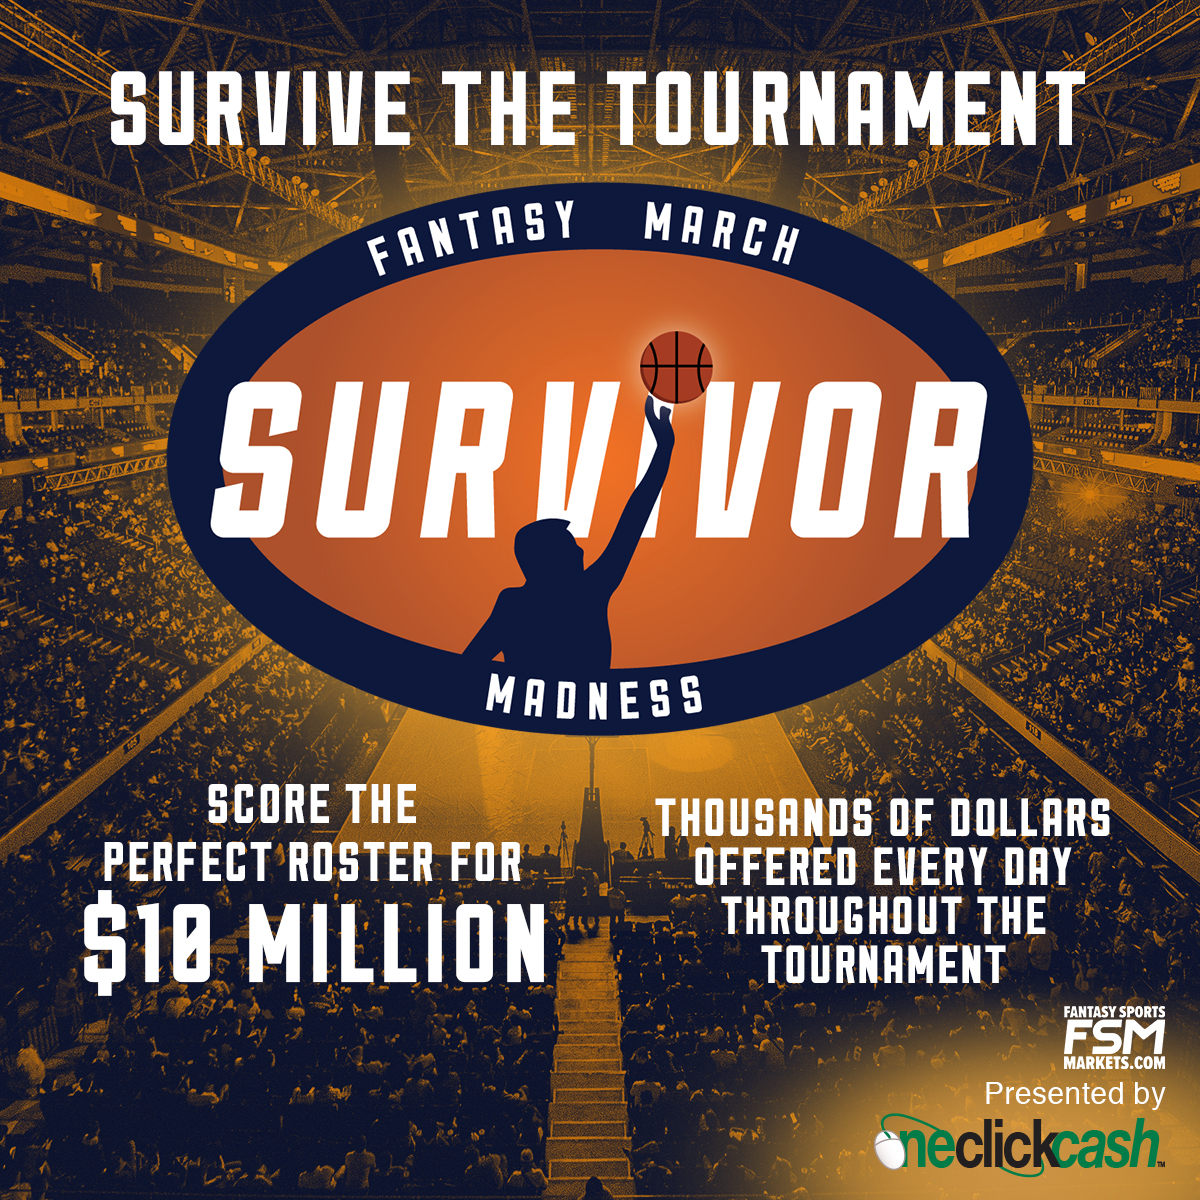 Survive-The-Tournament-1200x12003